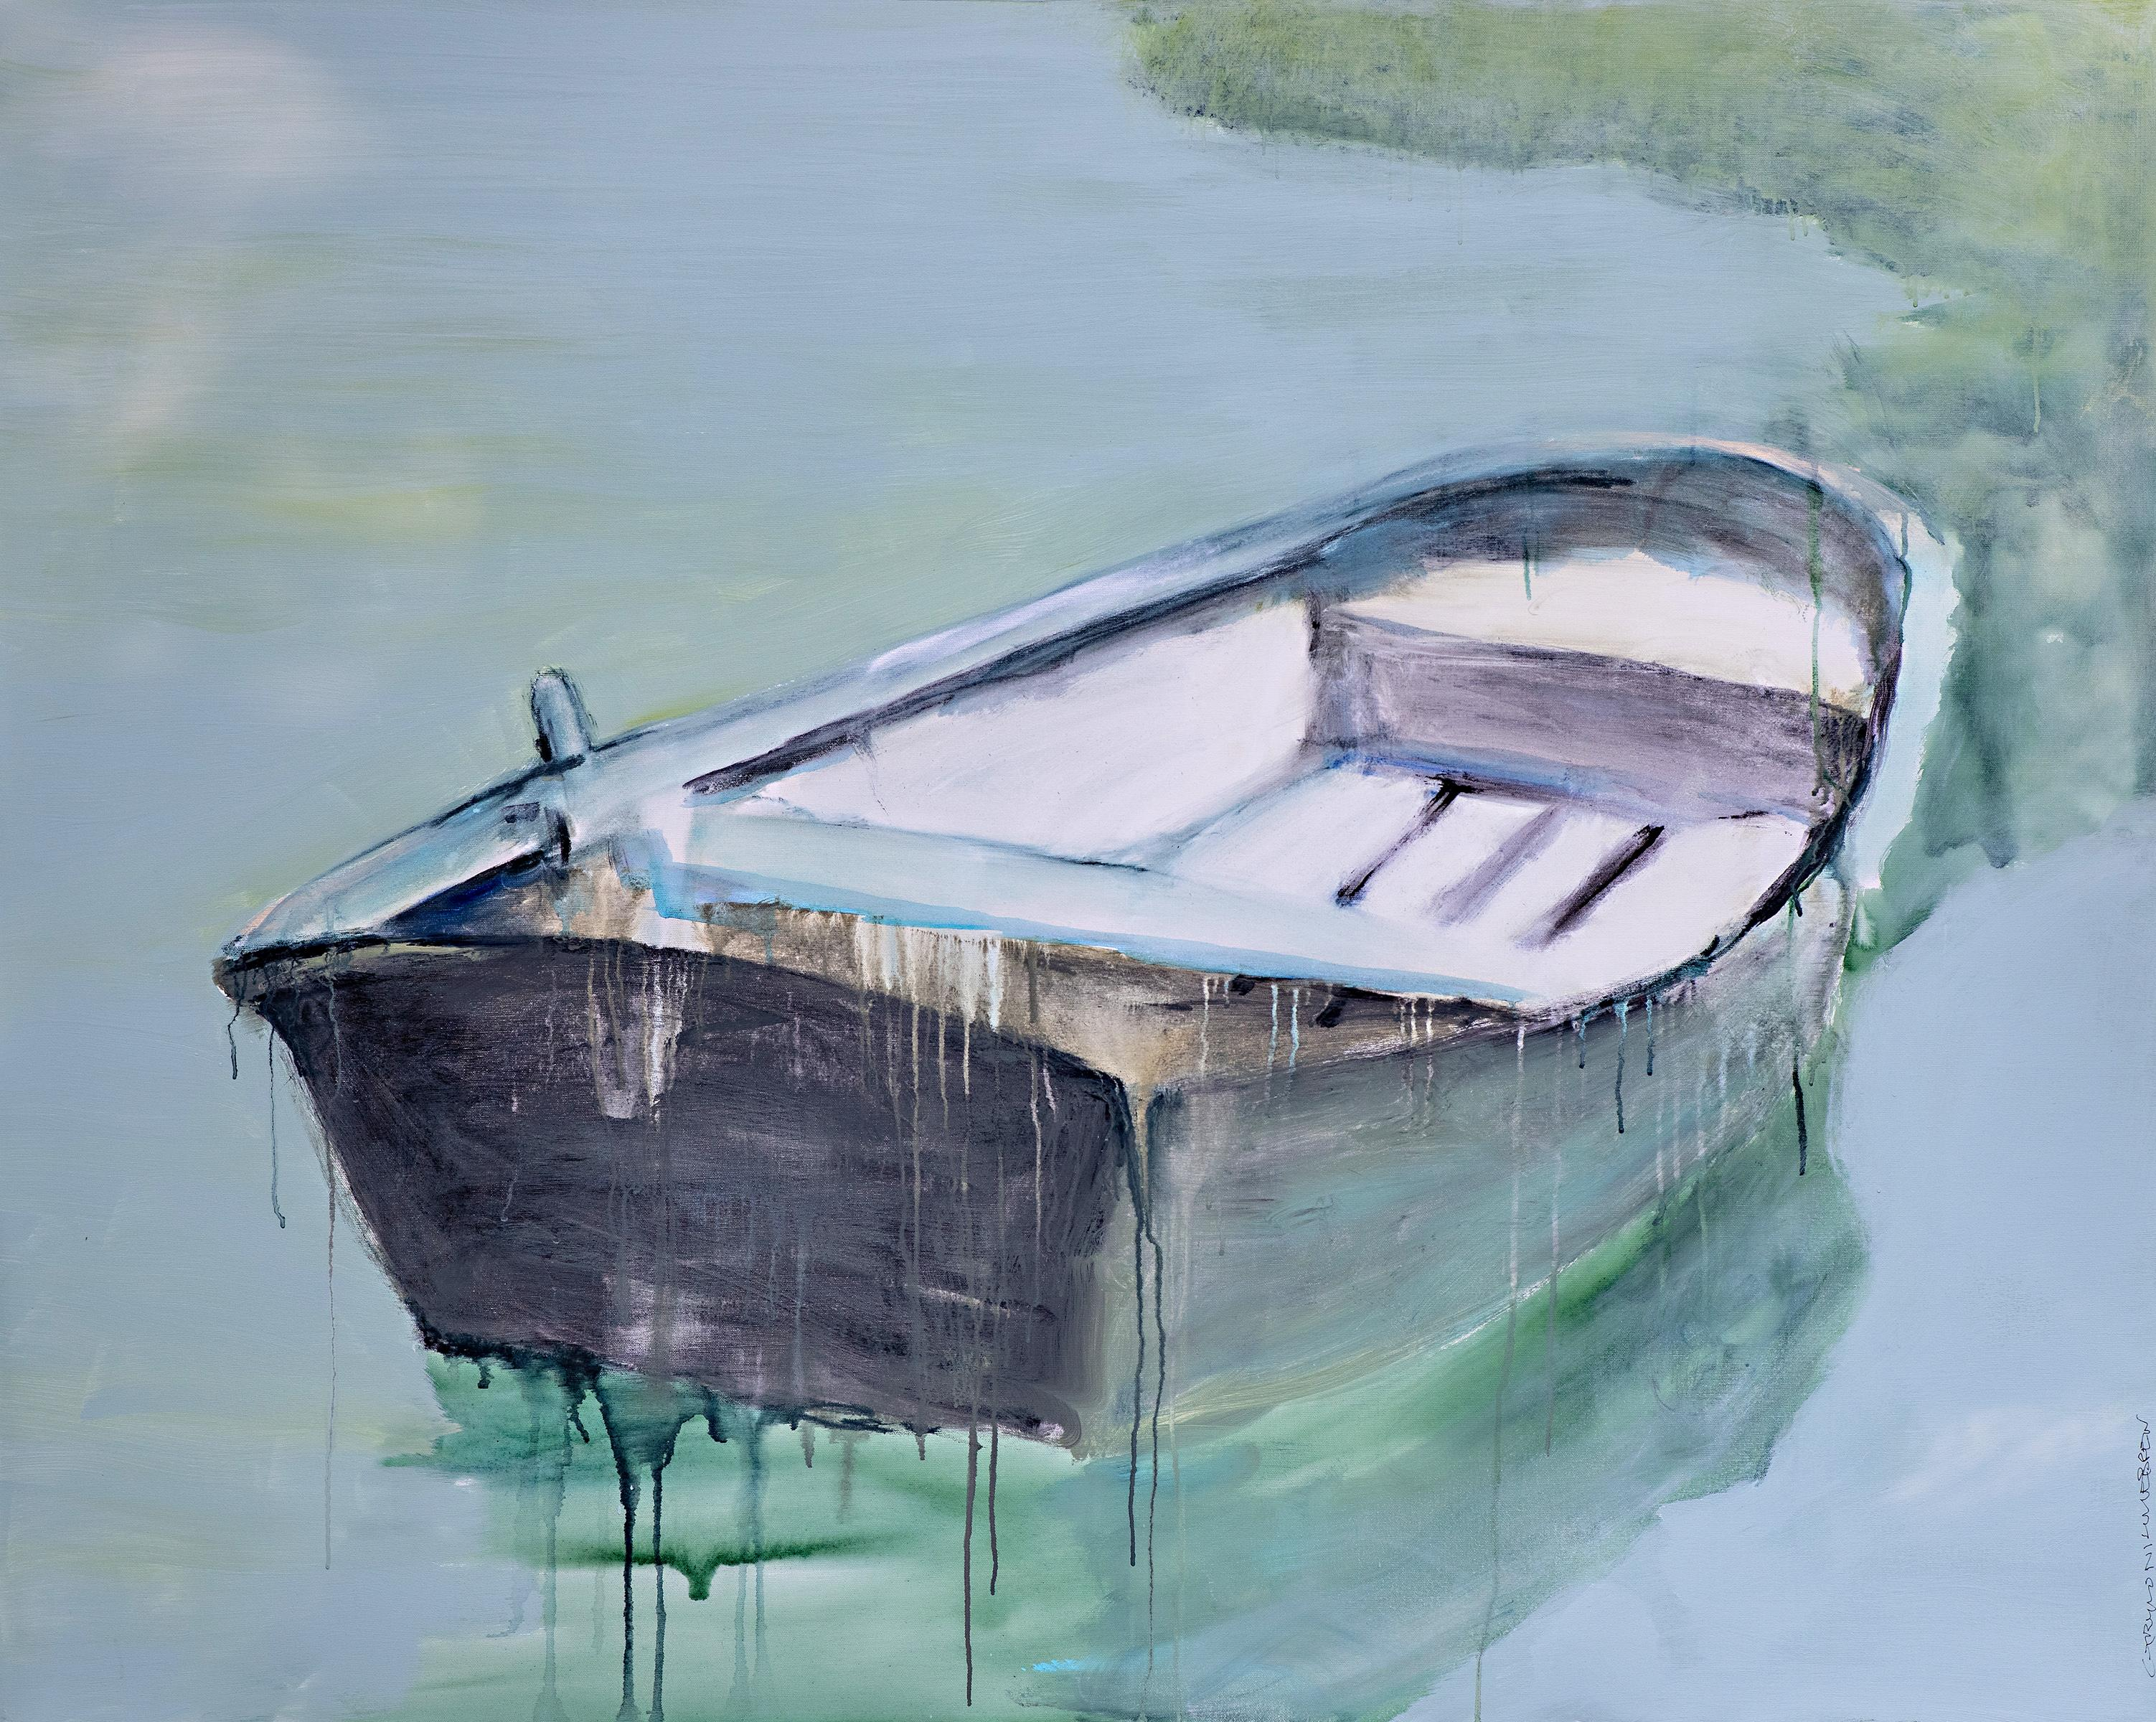 Making Believe by Carylon Killebrew Large Contemporary Boat Oil on Canvas